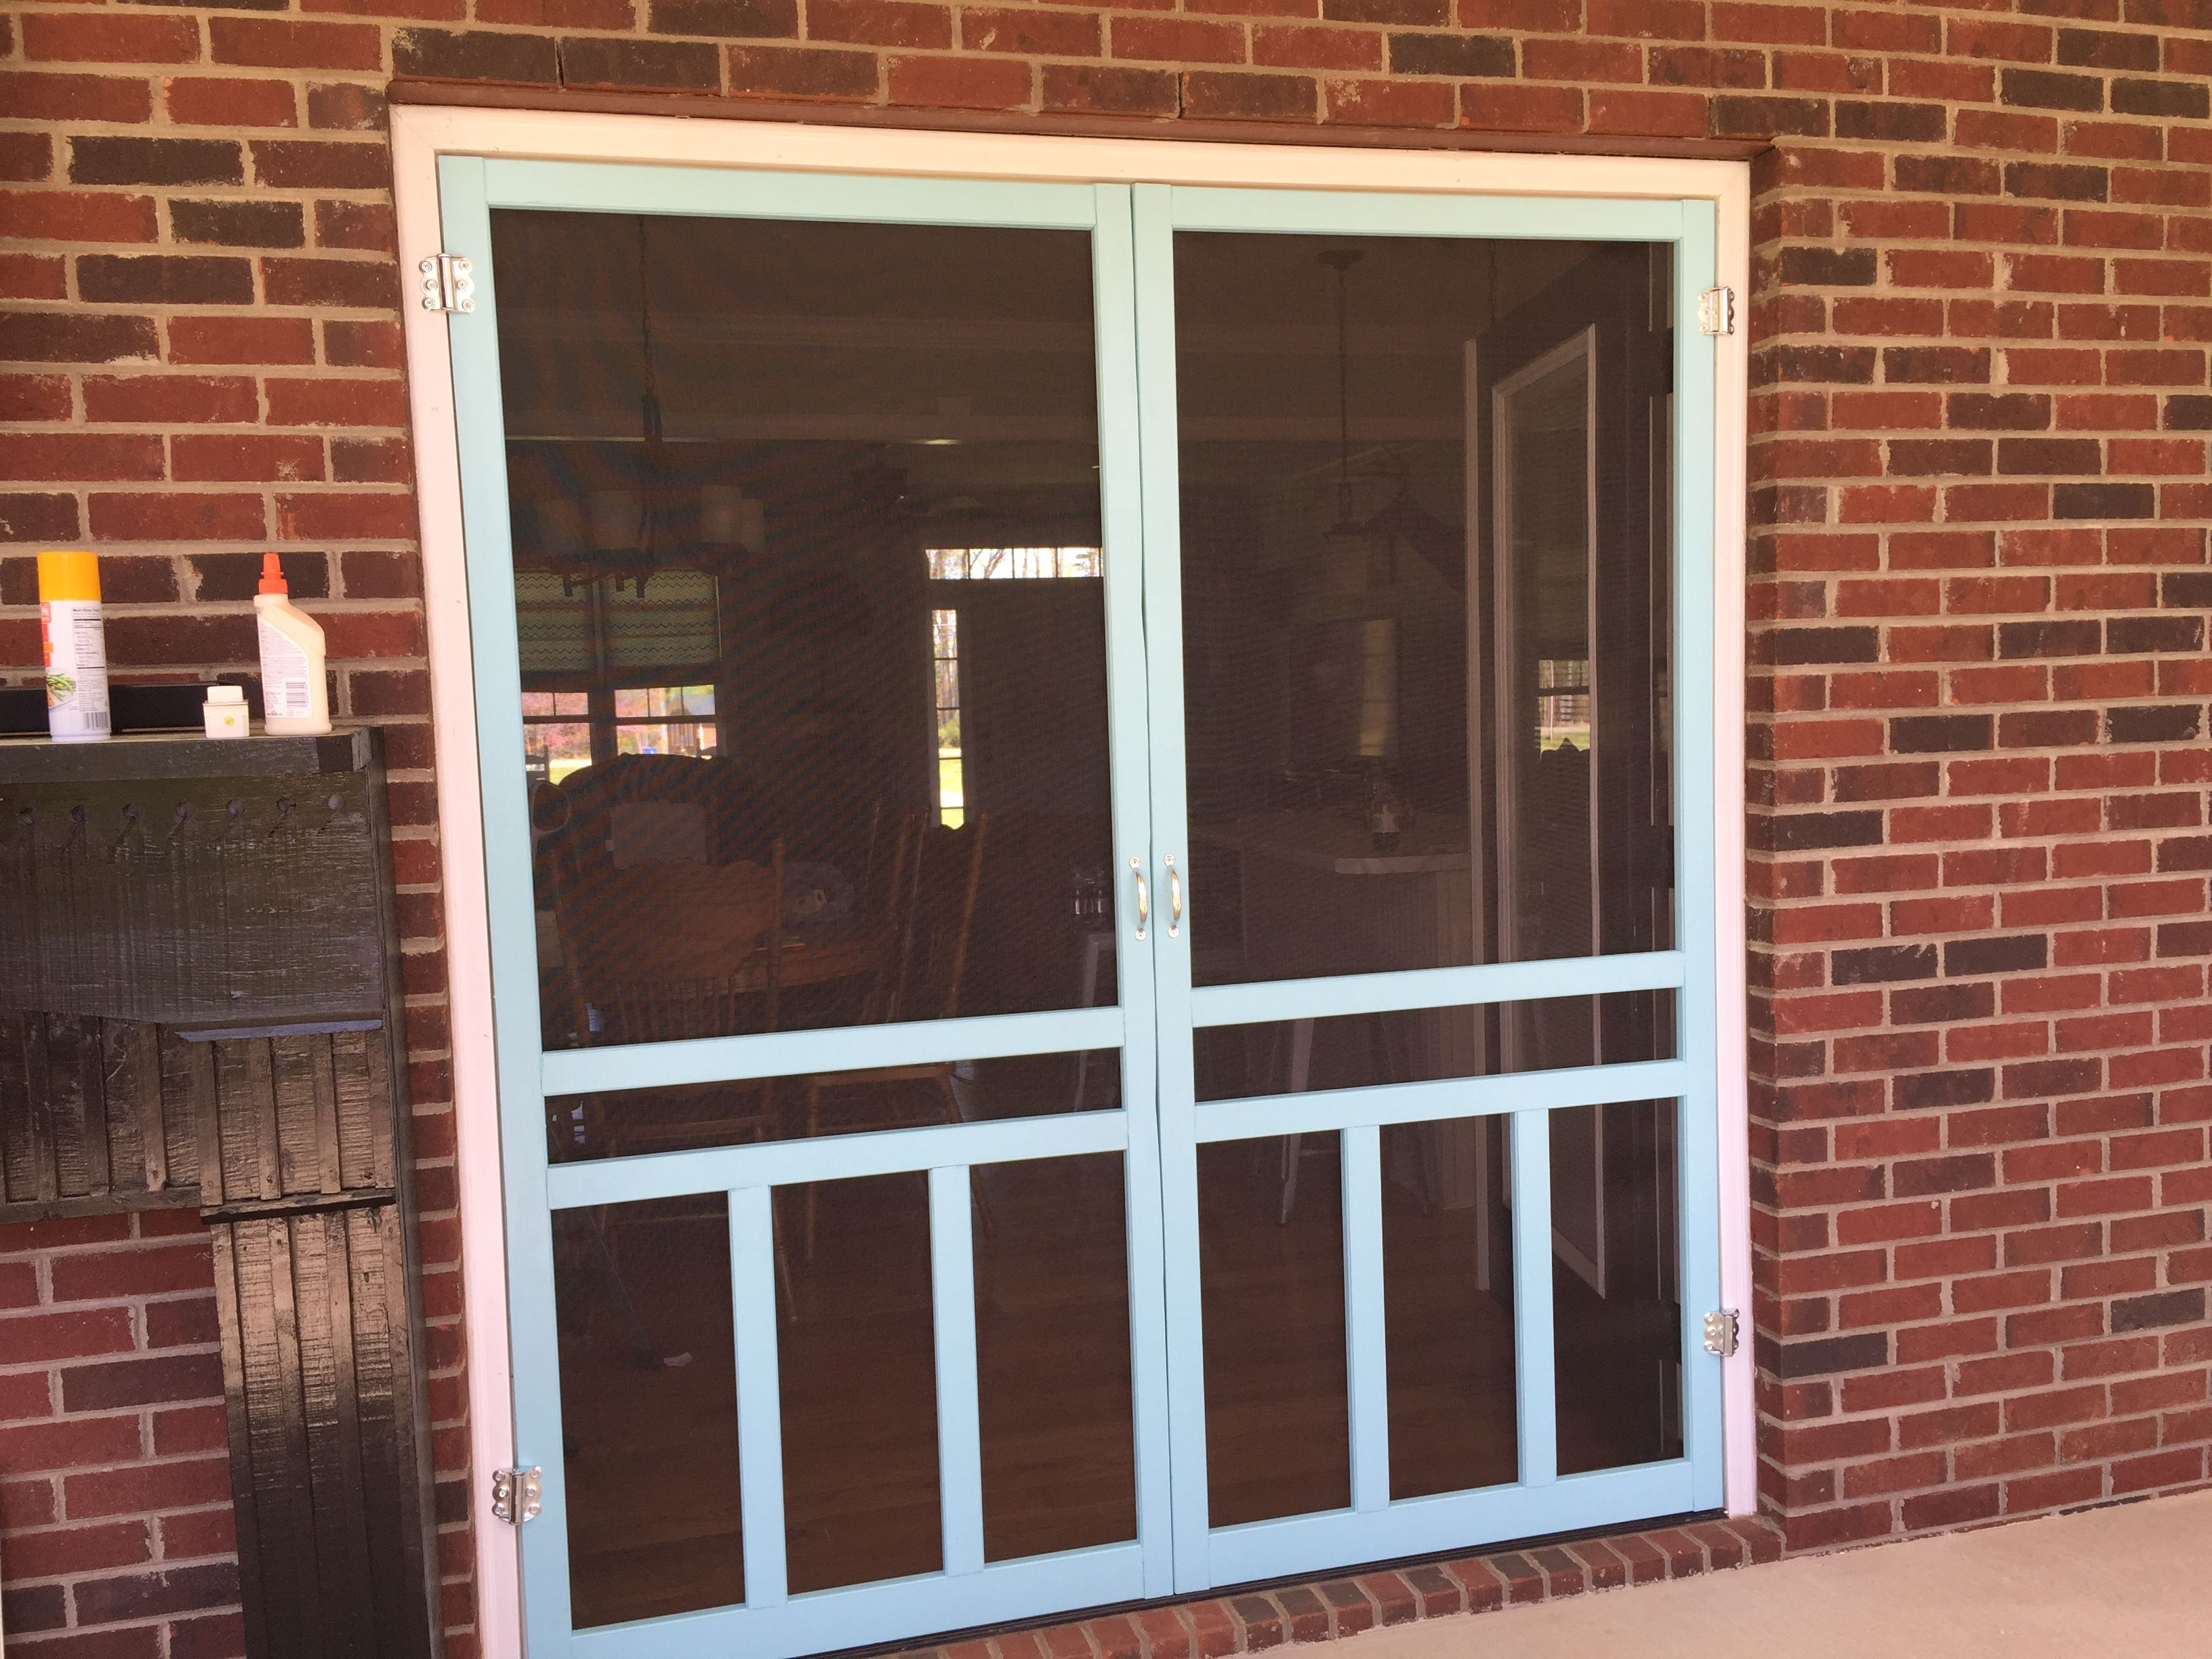 Wood Screen Doors From Lowes With Spring Hinges Patio Pinterest